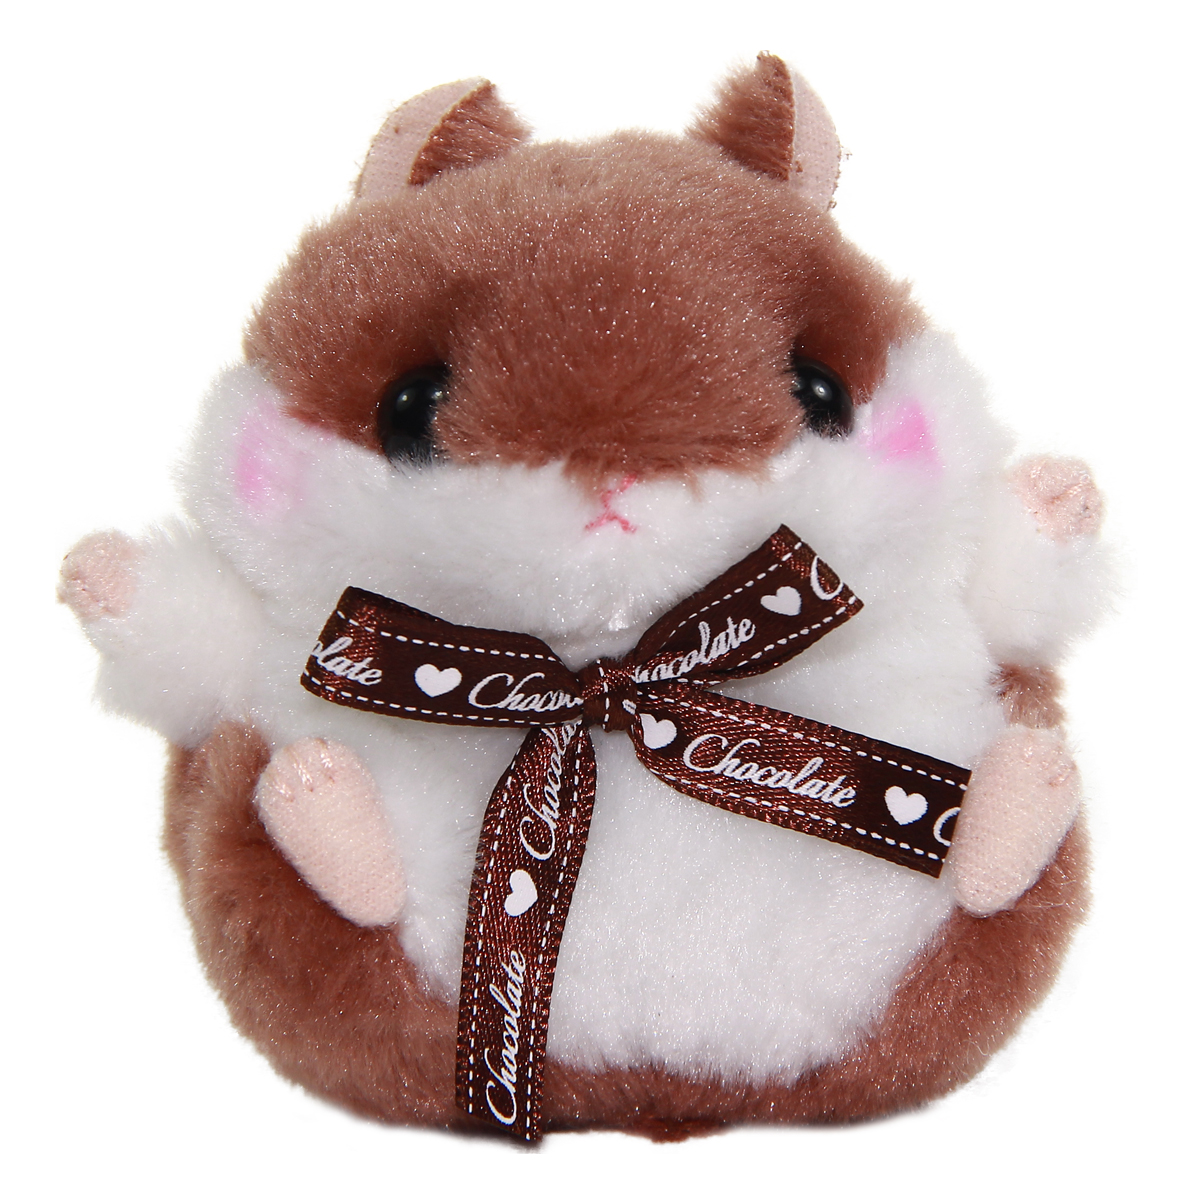 Plush Hamster, Amuse Colorful Fruits Plush Collection, Chocolate-chan, Brown, 4 Inches